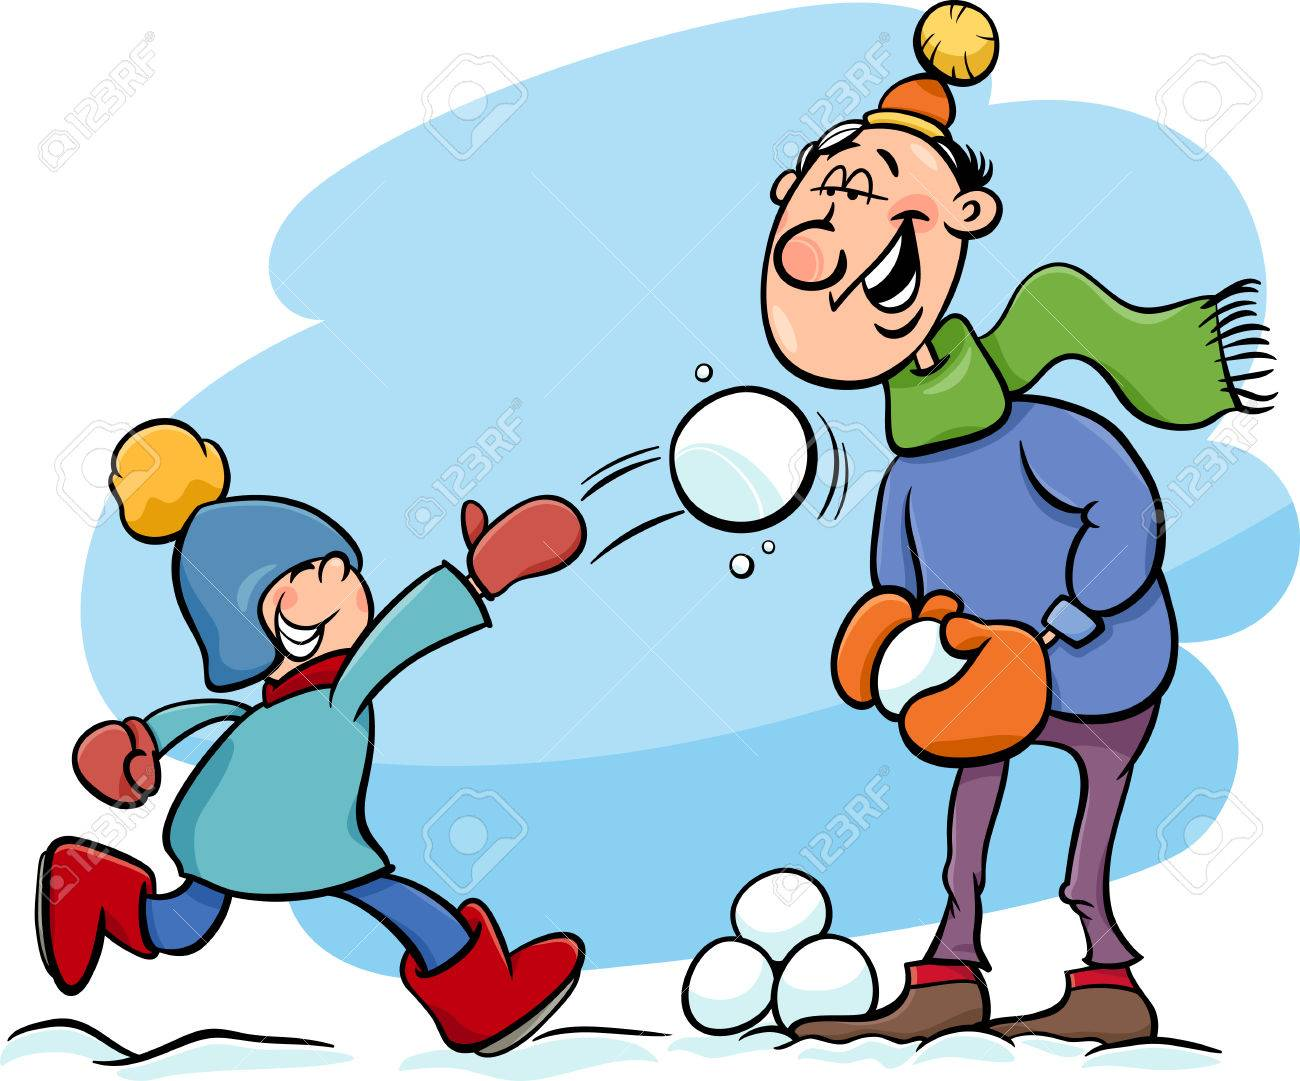 Throwing Snowball Cliparts Free Download Clip Art.